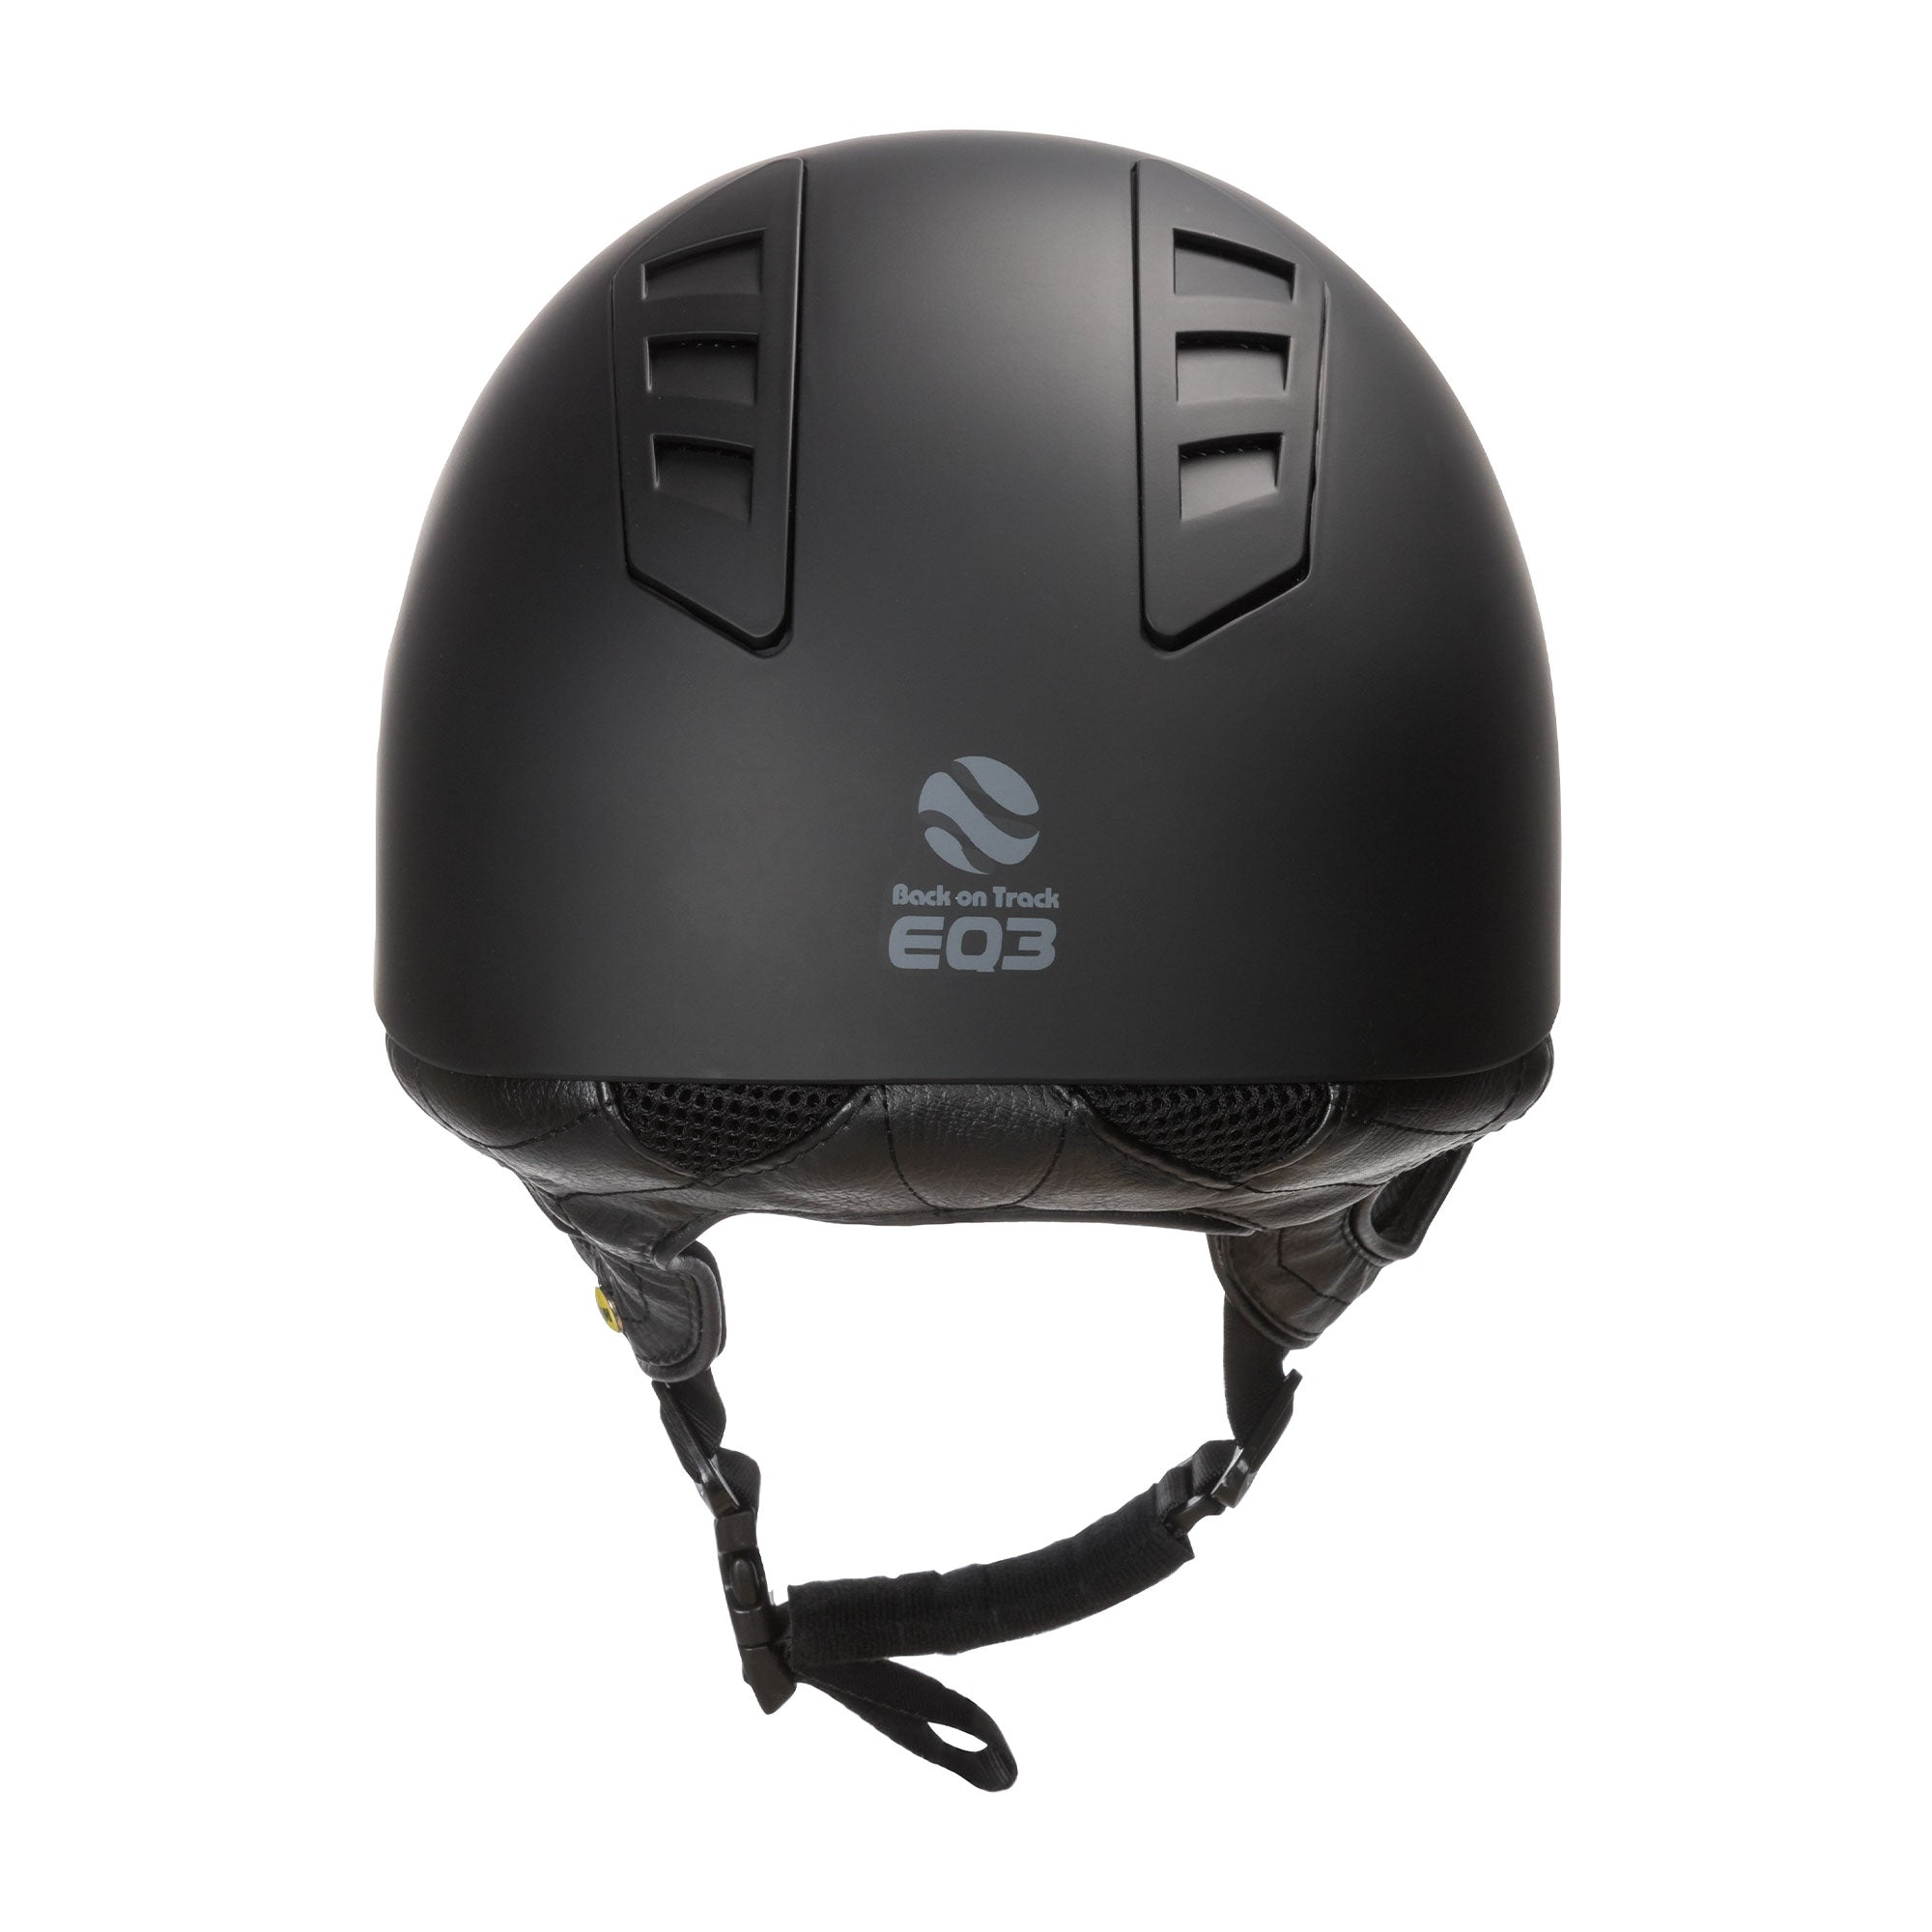 EQ3 Rijhelm Smooth Shell Zwart (5300223115419)